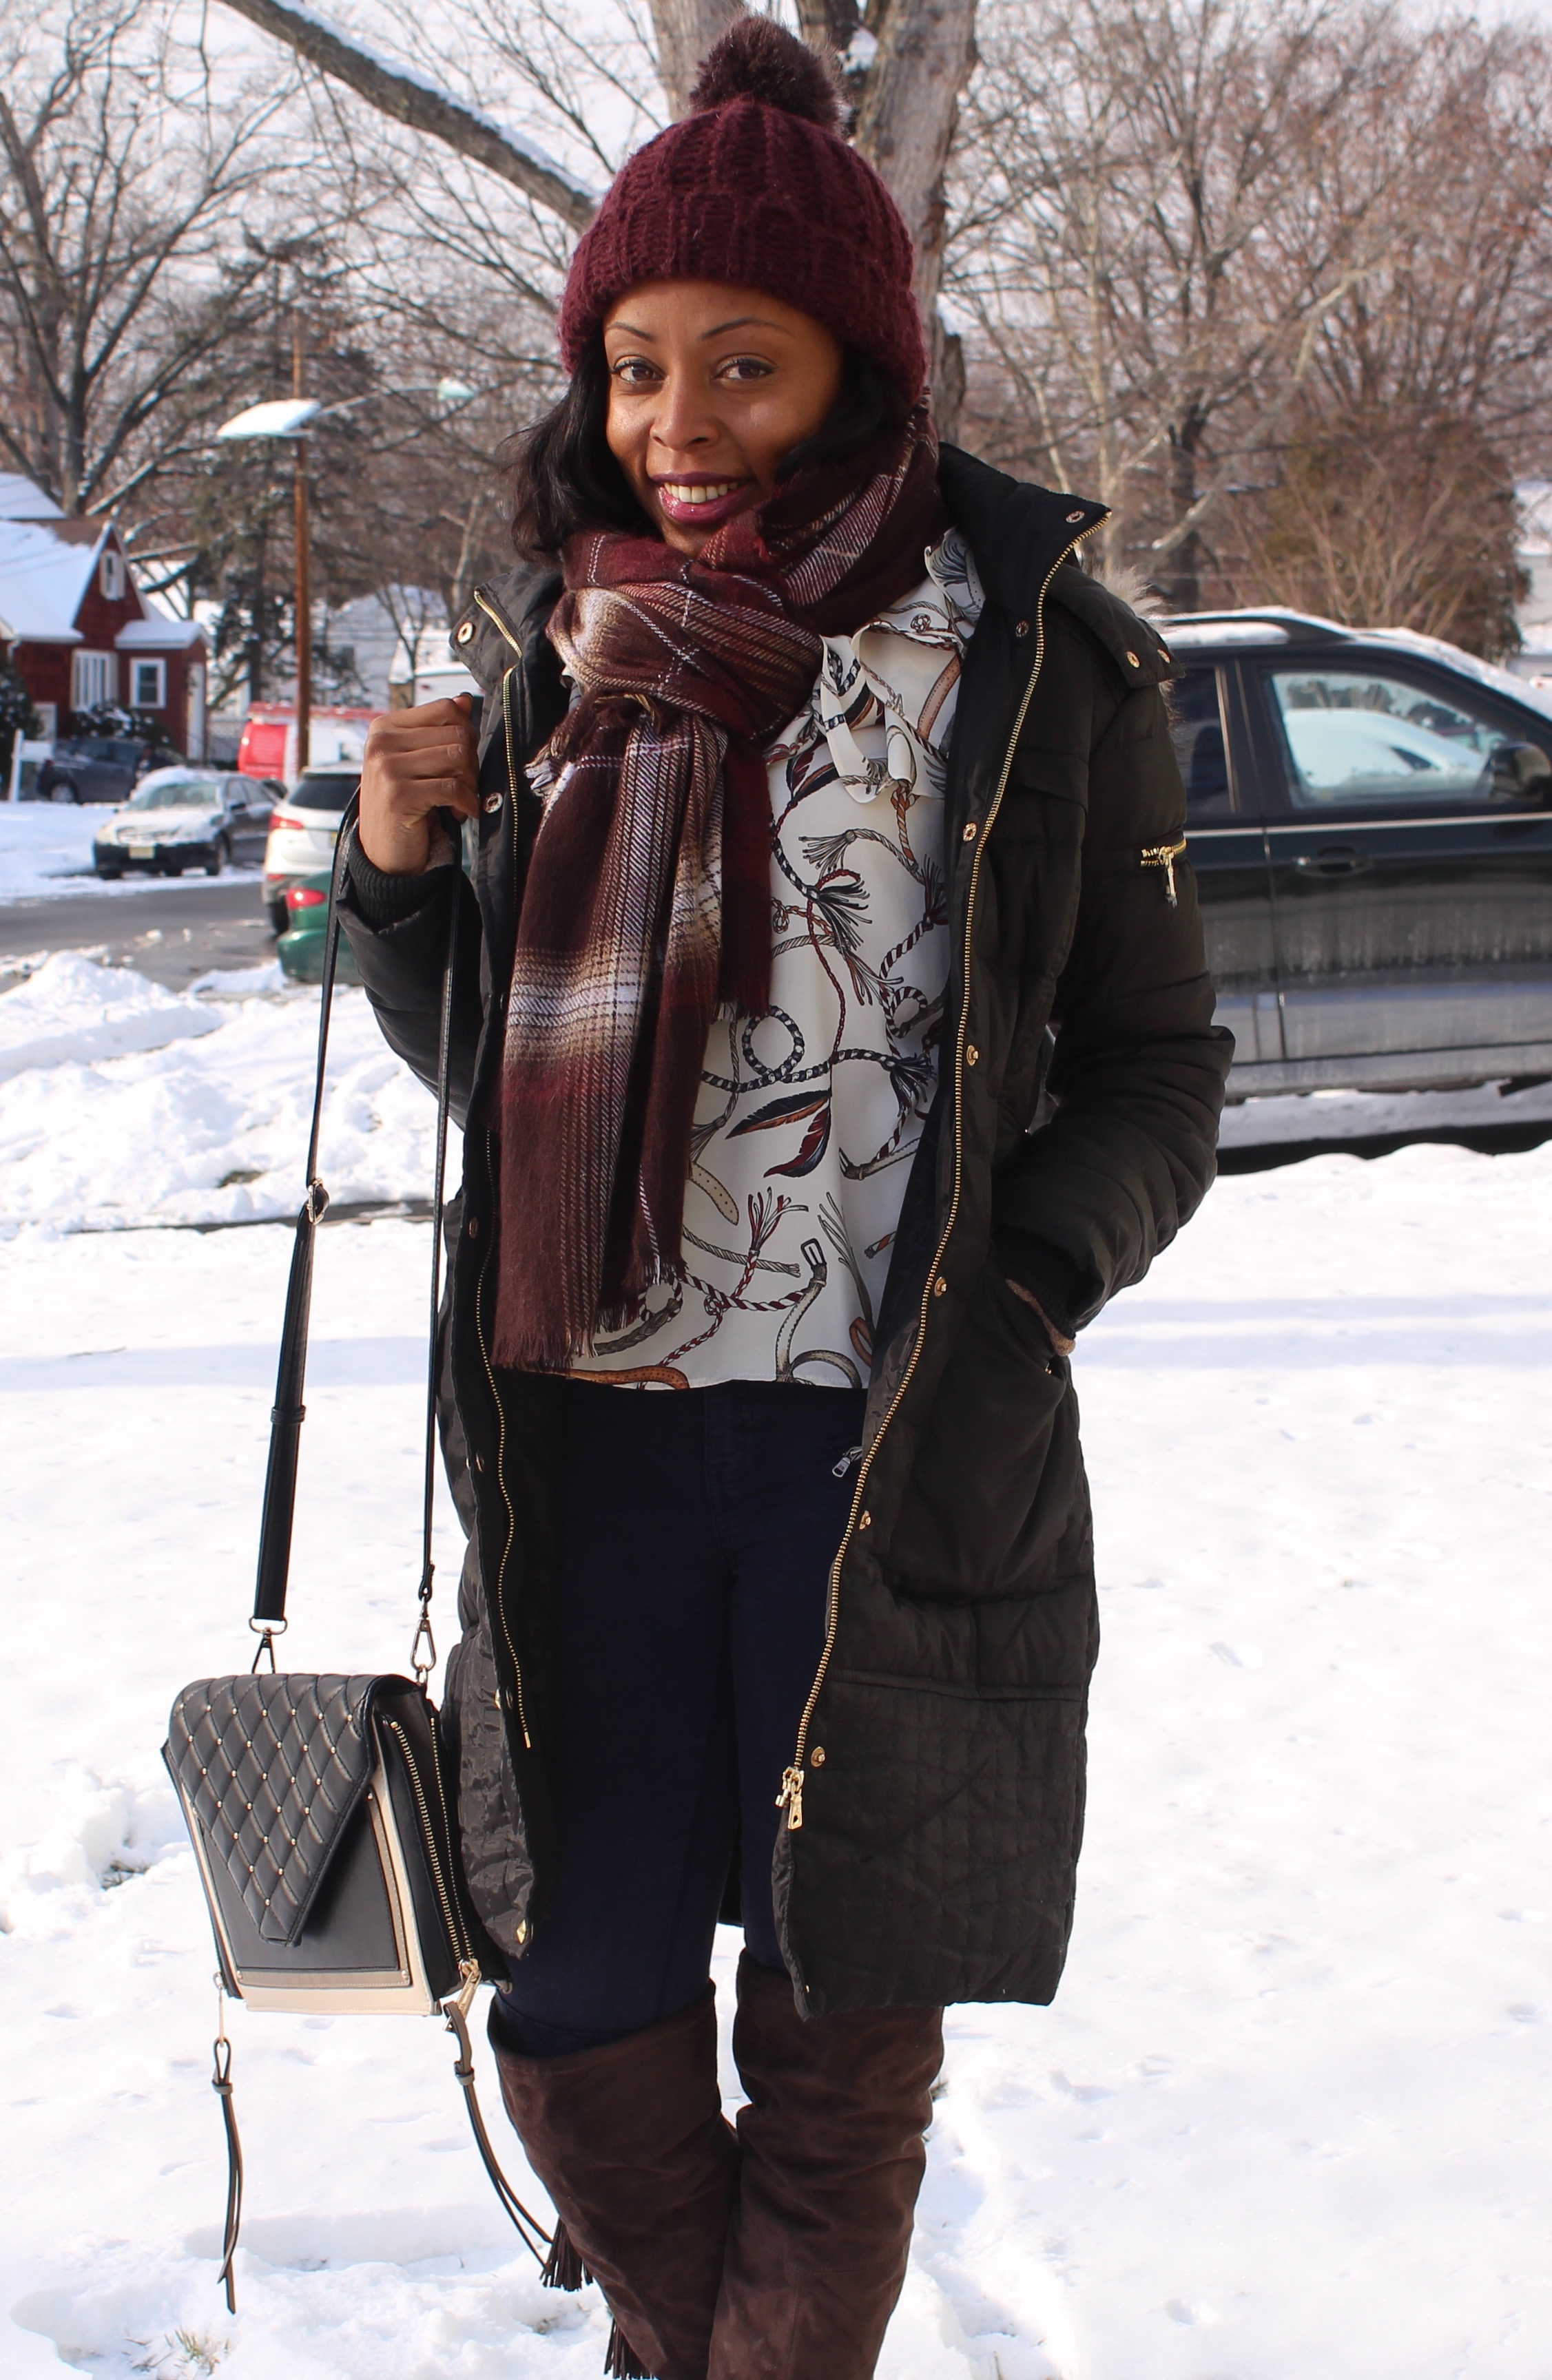 Accessorizing Your Winter Outfit